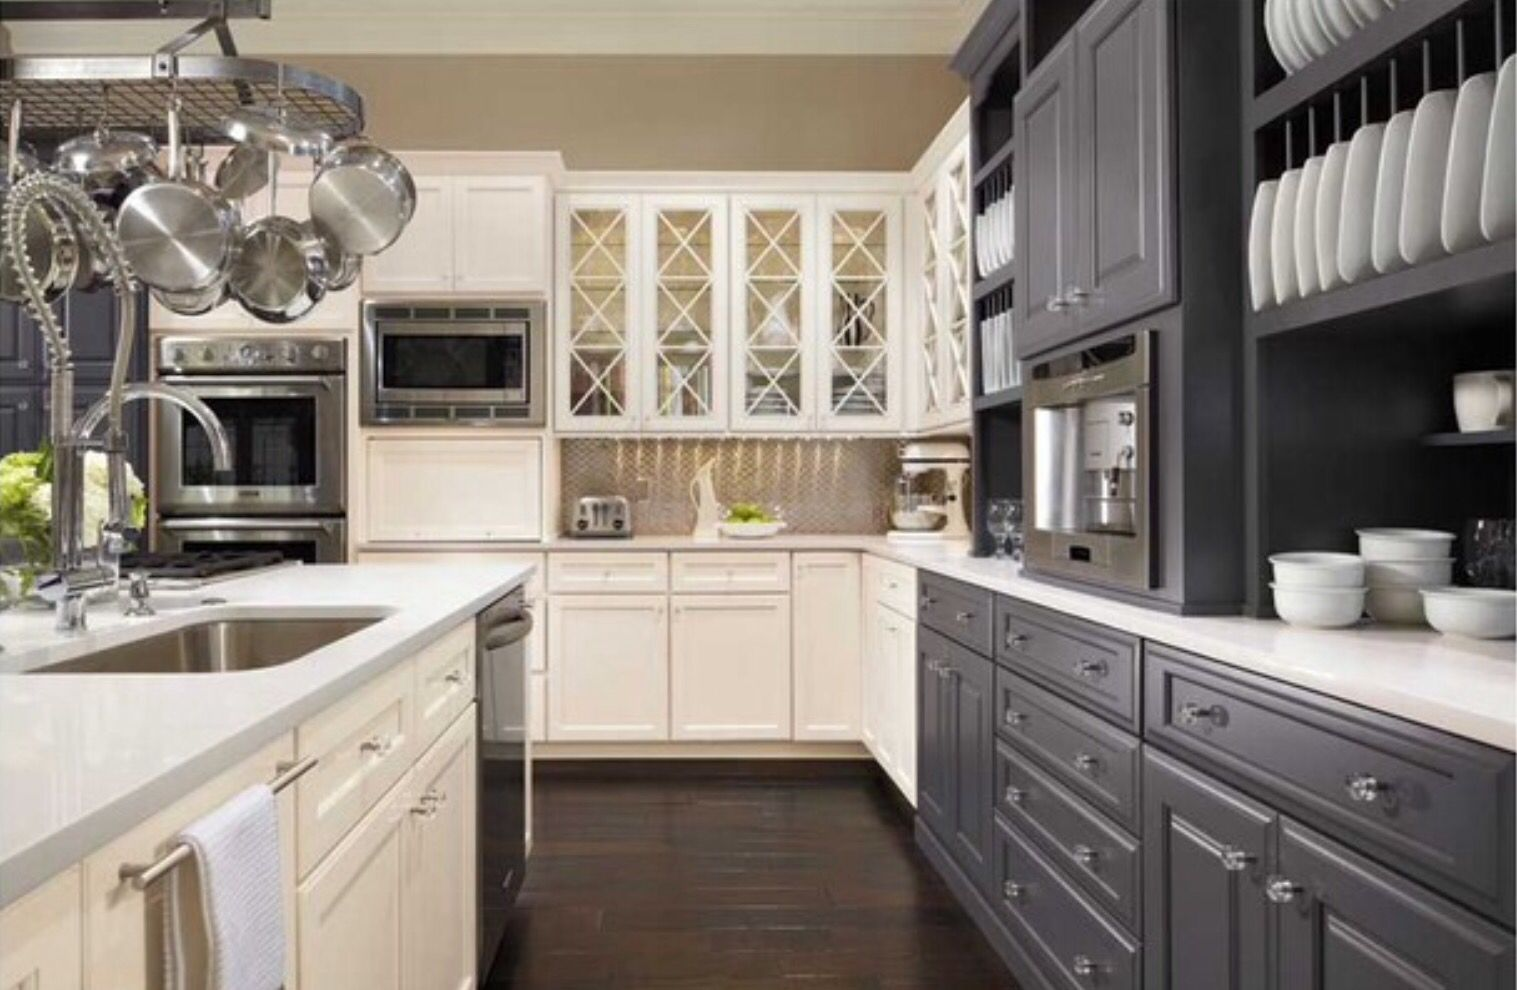 Sherwin williams arcade white on cabinets web gray for The web kitchen